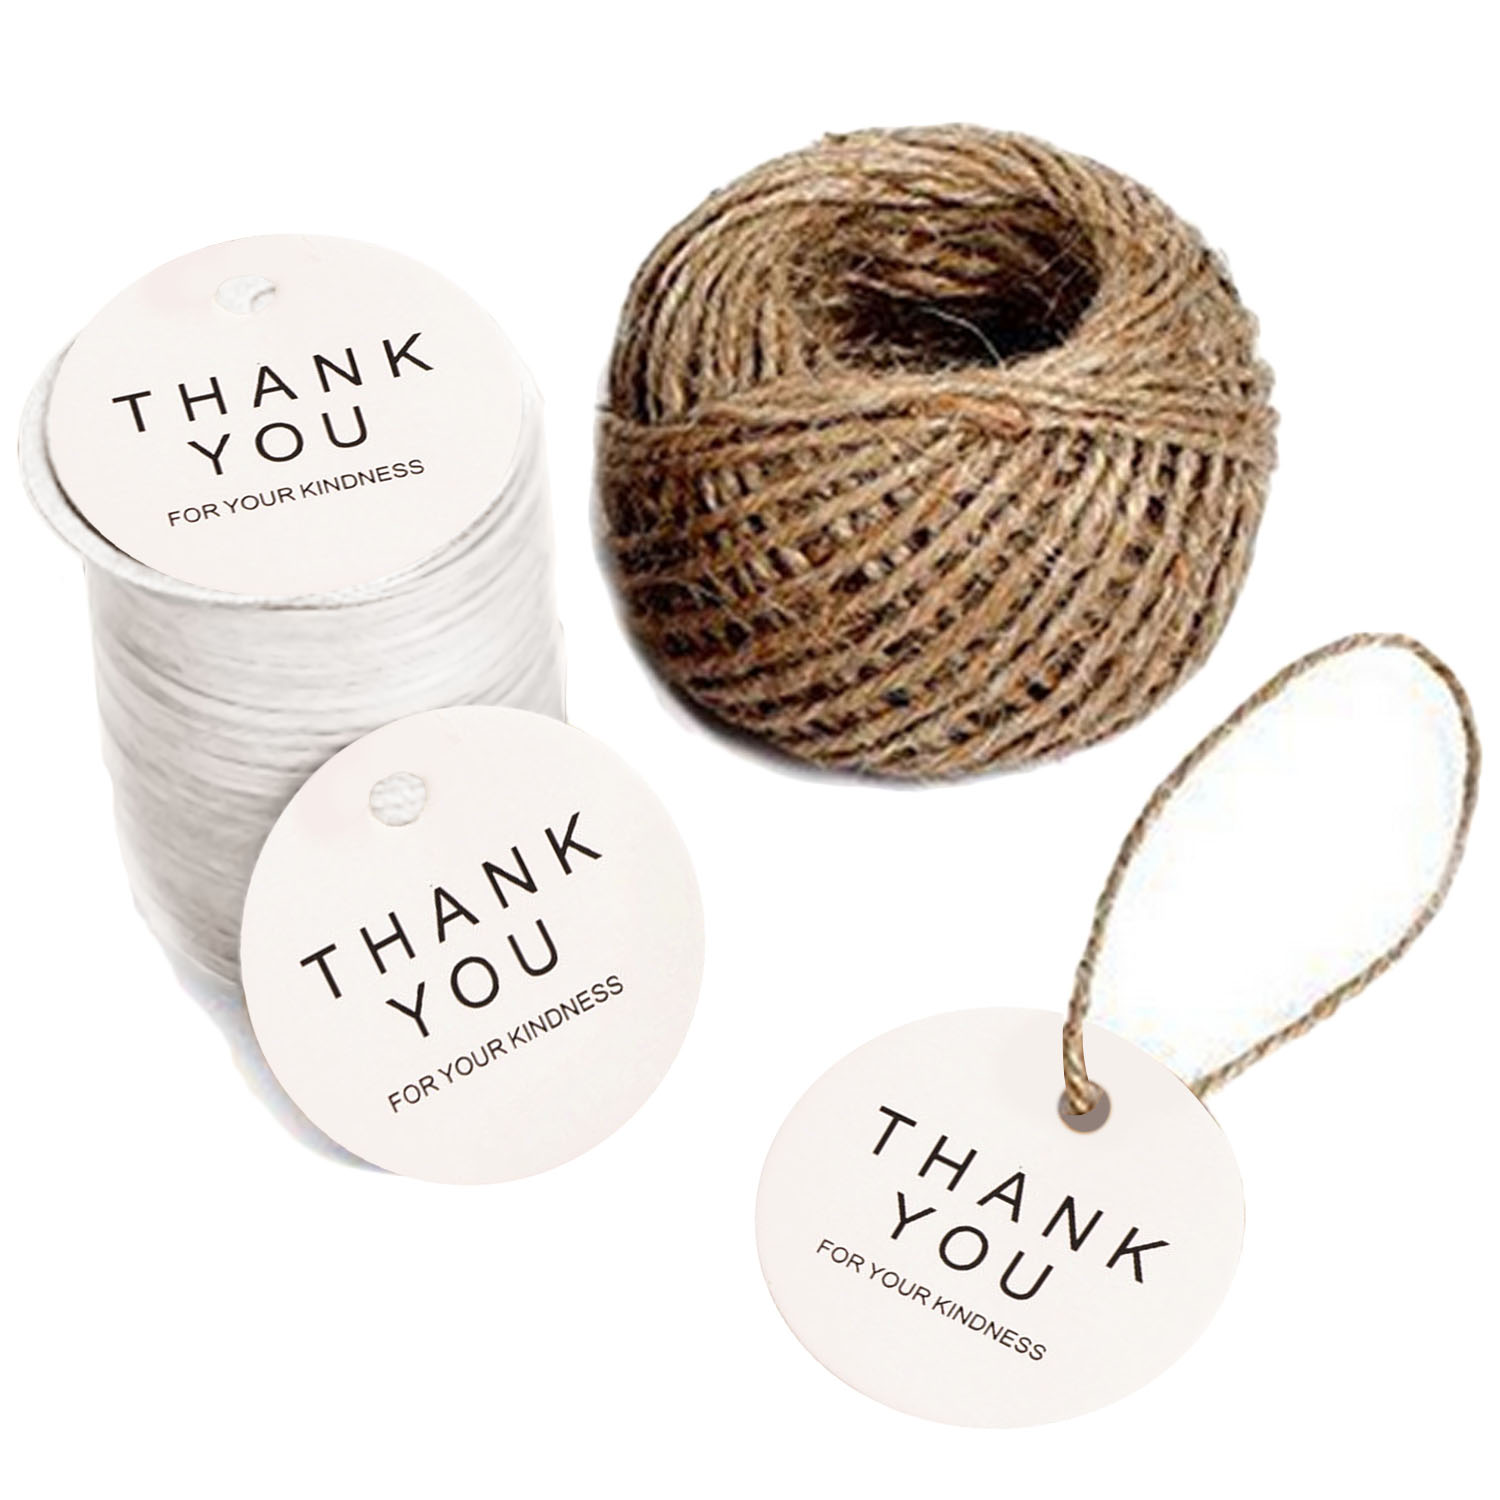 100 Pcs Round Shape Thank You Kraft Paper Tag Diy Wedding Party Blessing Greeting Card Label Gift Favor Tags With 30M Jute Twine White Intl ใหม่ล่าสุด